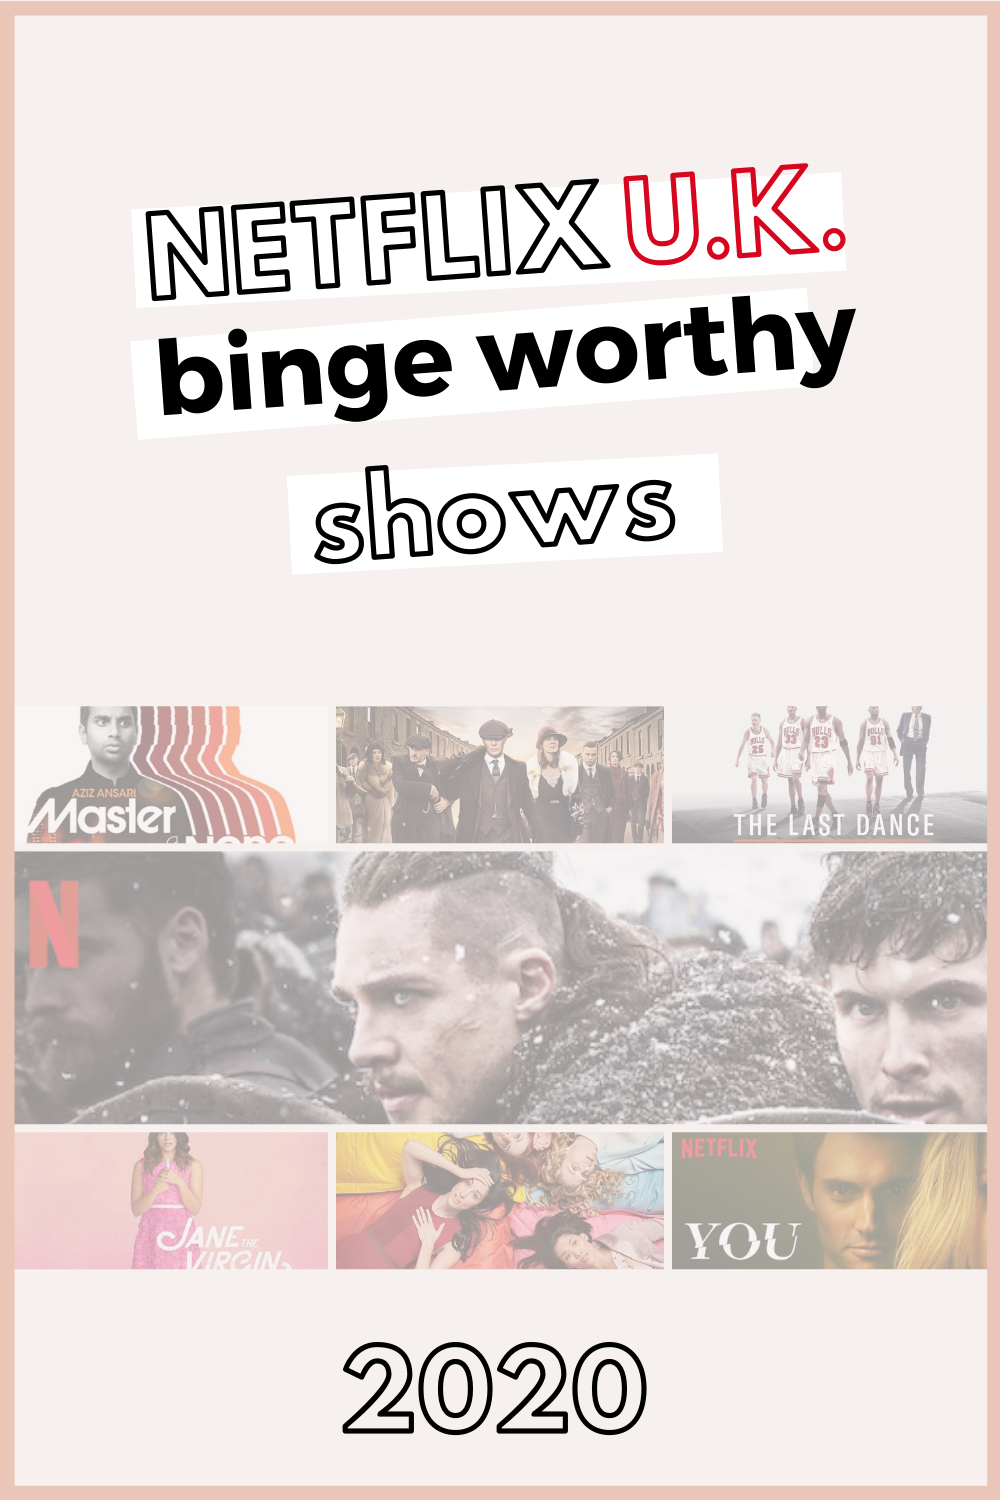 Seefoodplay | MY TOP NETFLIX BINGE WORTHY TV SHOW RECOMMENDATIONS | 2020 UK